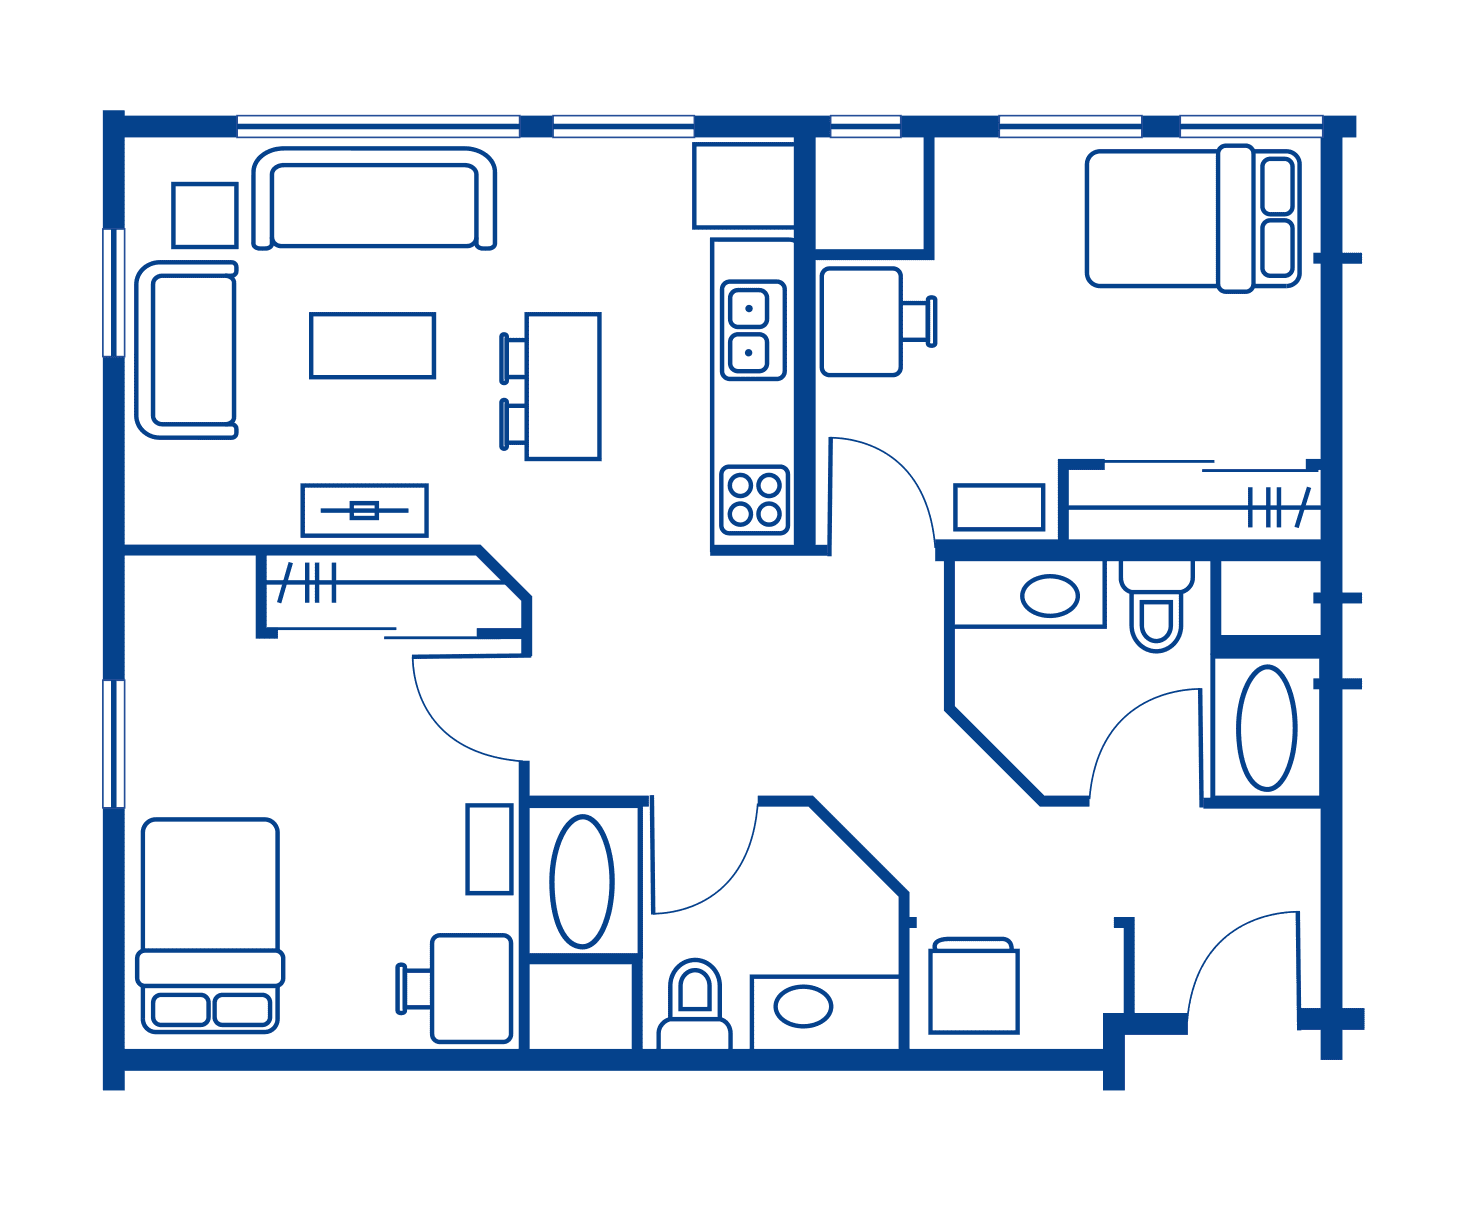 2 Bedroom Floorplan 10